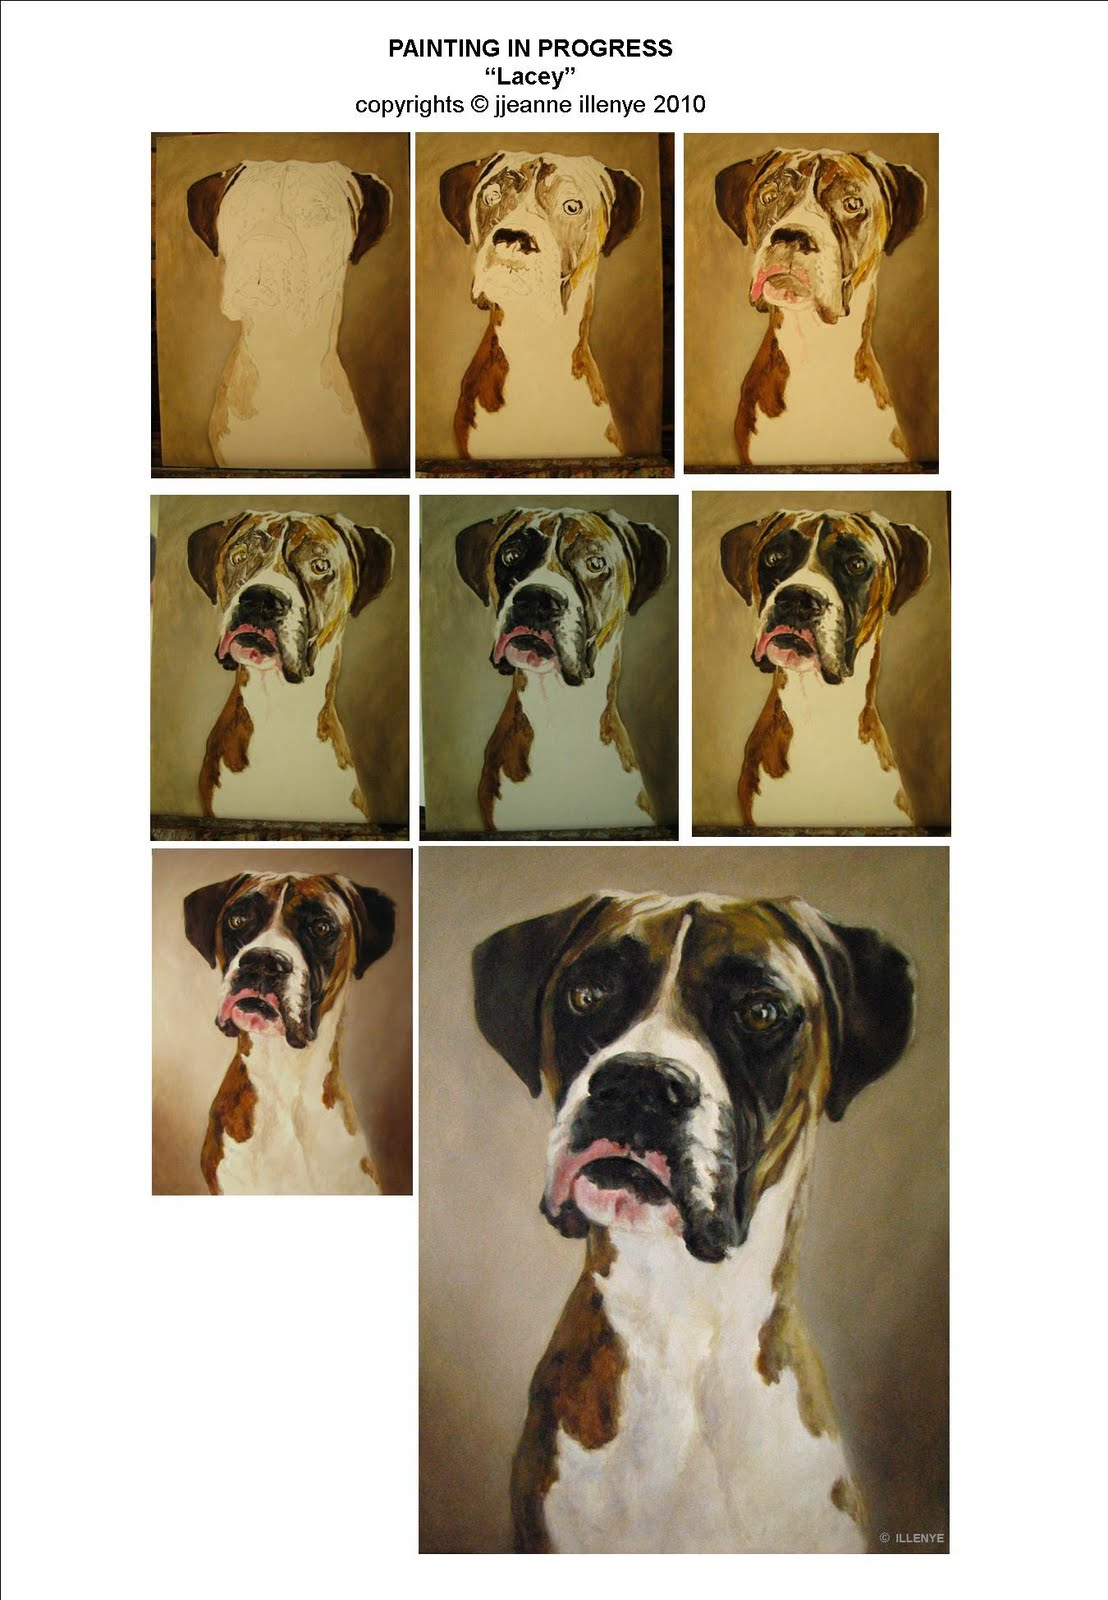 Jeanne illenye looking after them lacey boxer portrait in lacey tutorial baditri Image collections